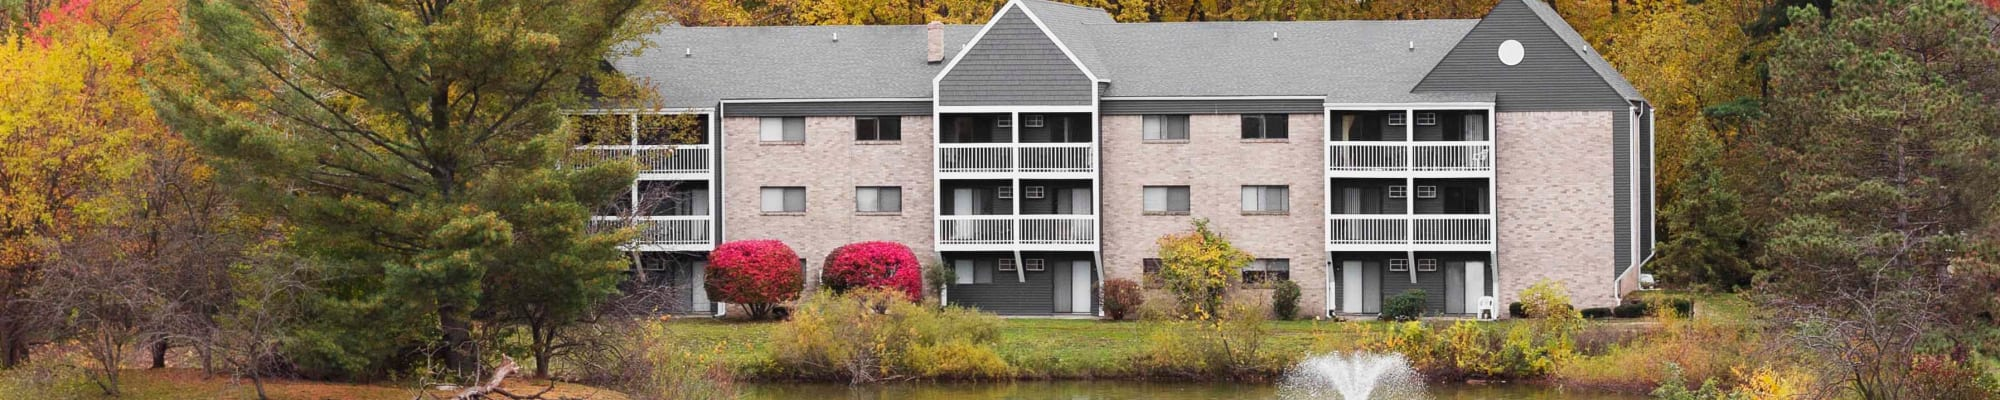 Contact Us at Kellogg Cove Apartments in Kentwood, Michigan